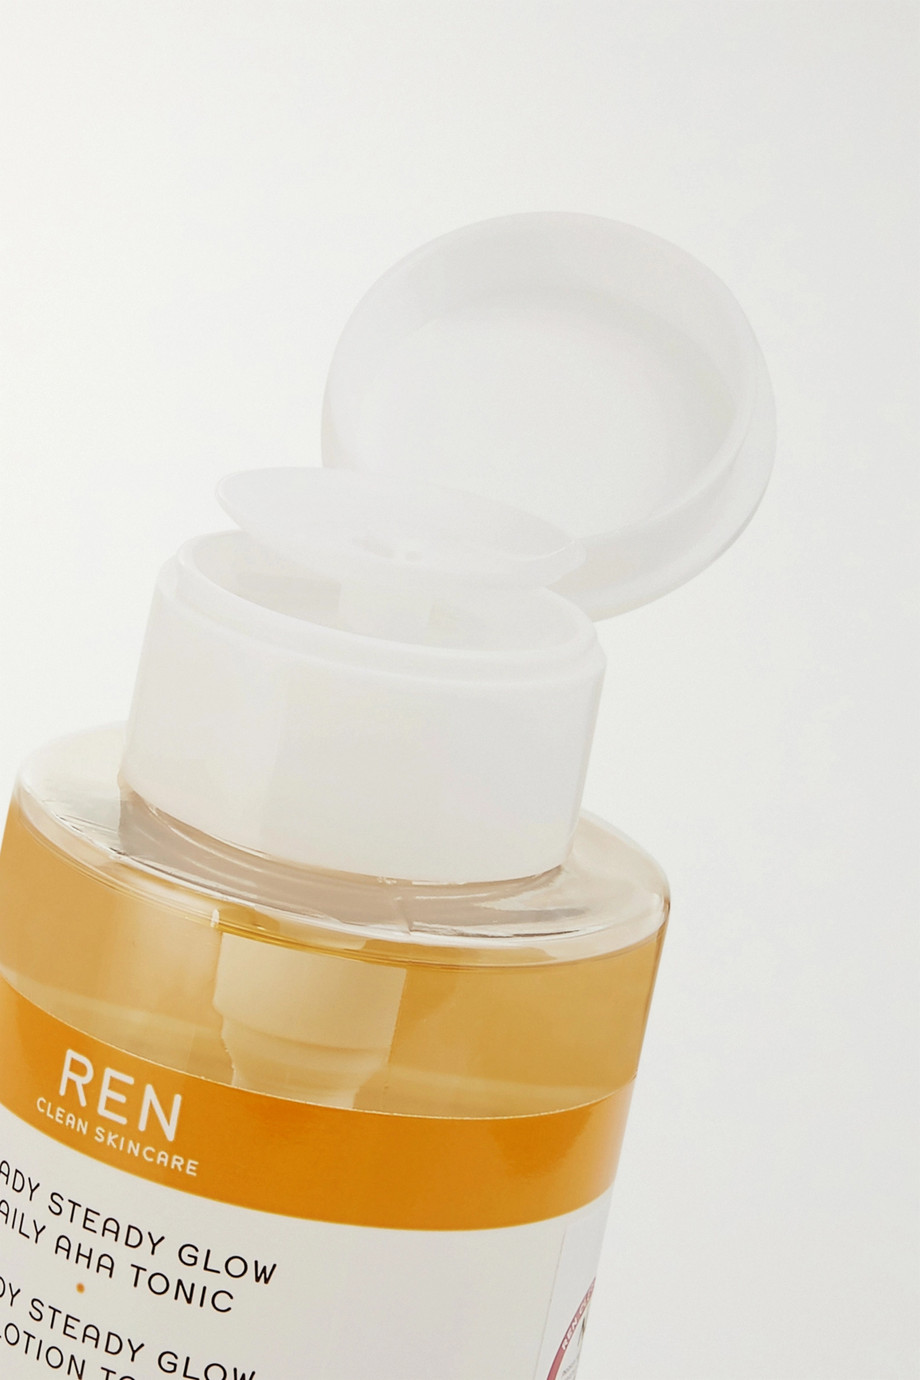 REN Clean Skincare Ready Steady Glow Daily AHA Tonic, 250ml